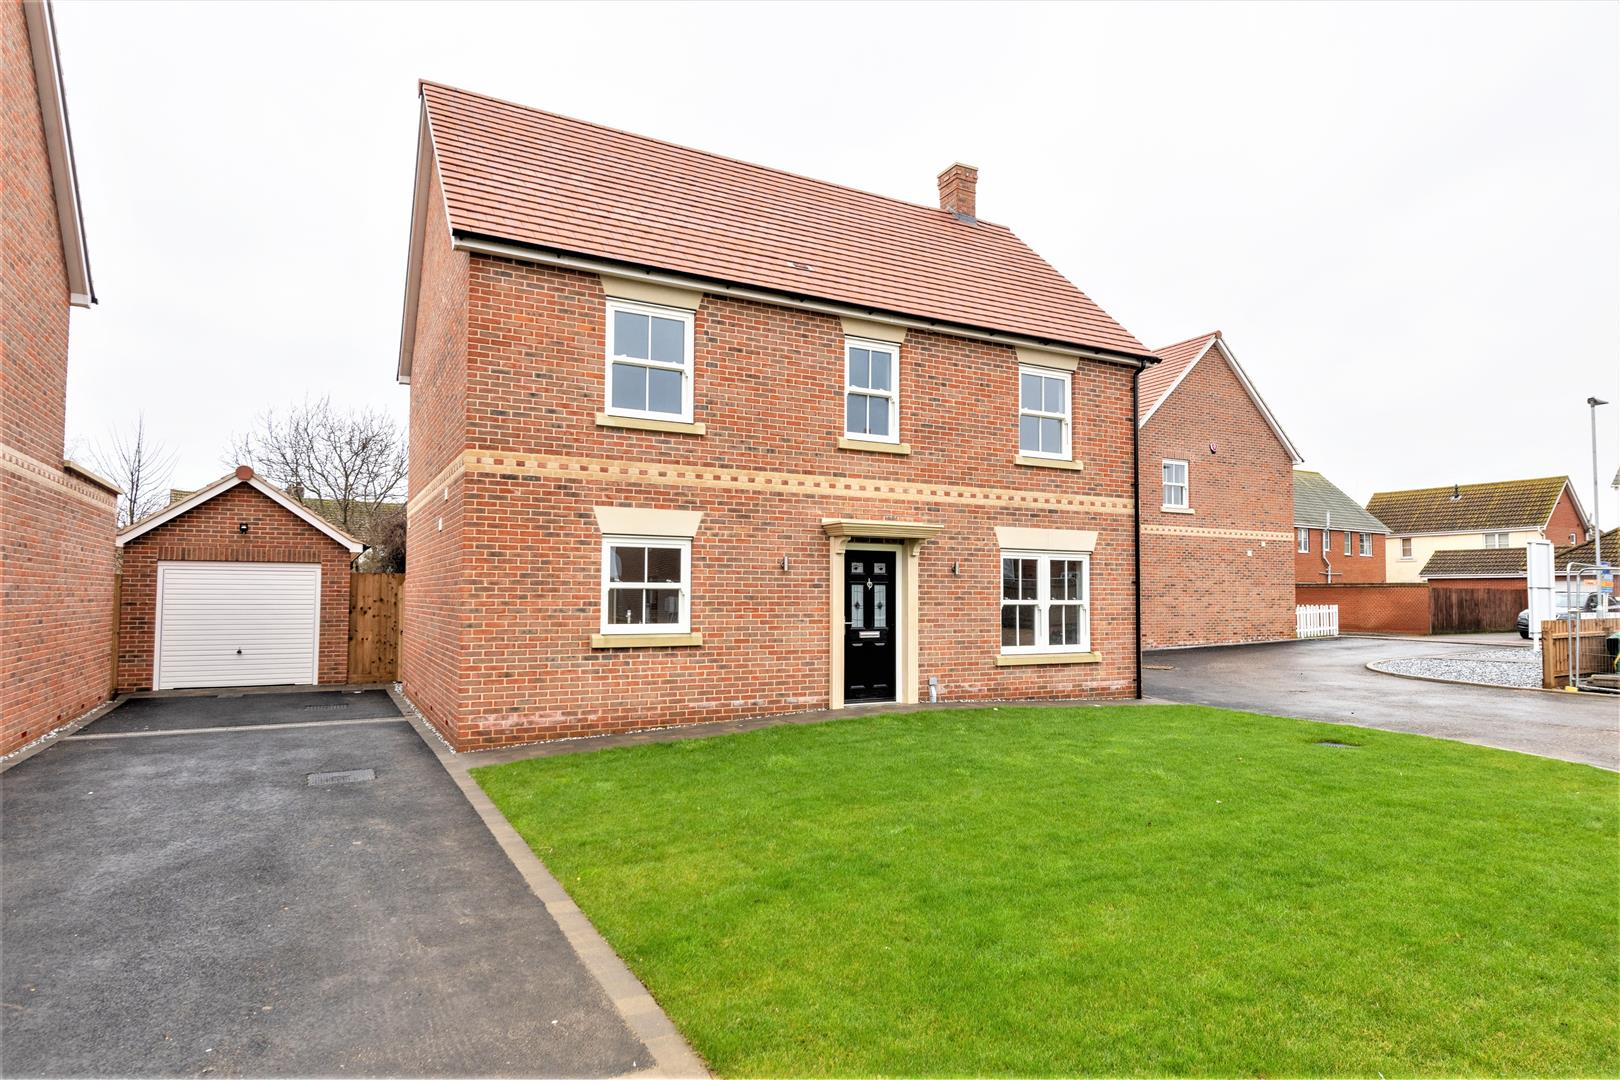 Aldrich Close, Kirby Cross, Essex, CO13 0LX